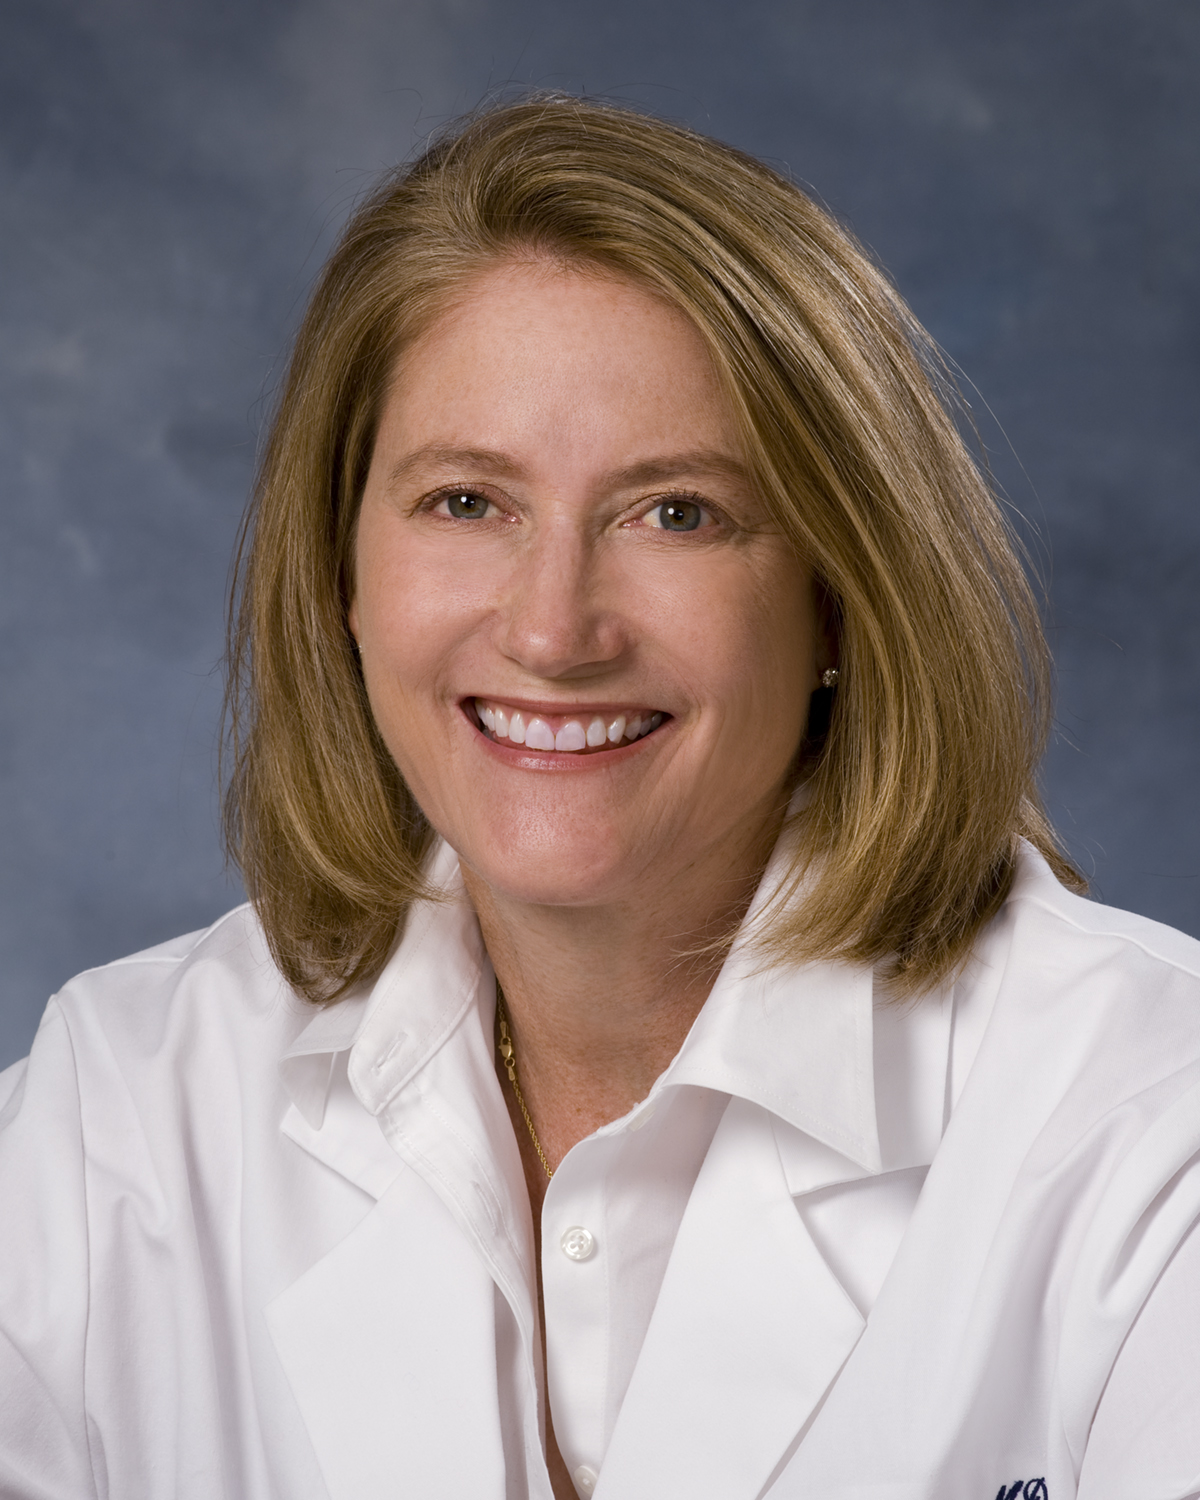 Dr. Anne McBride, MD